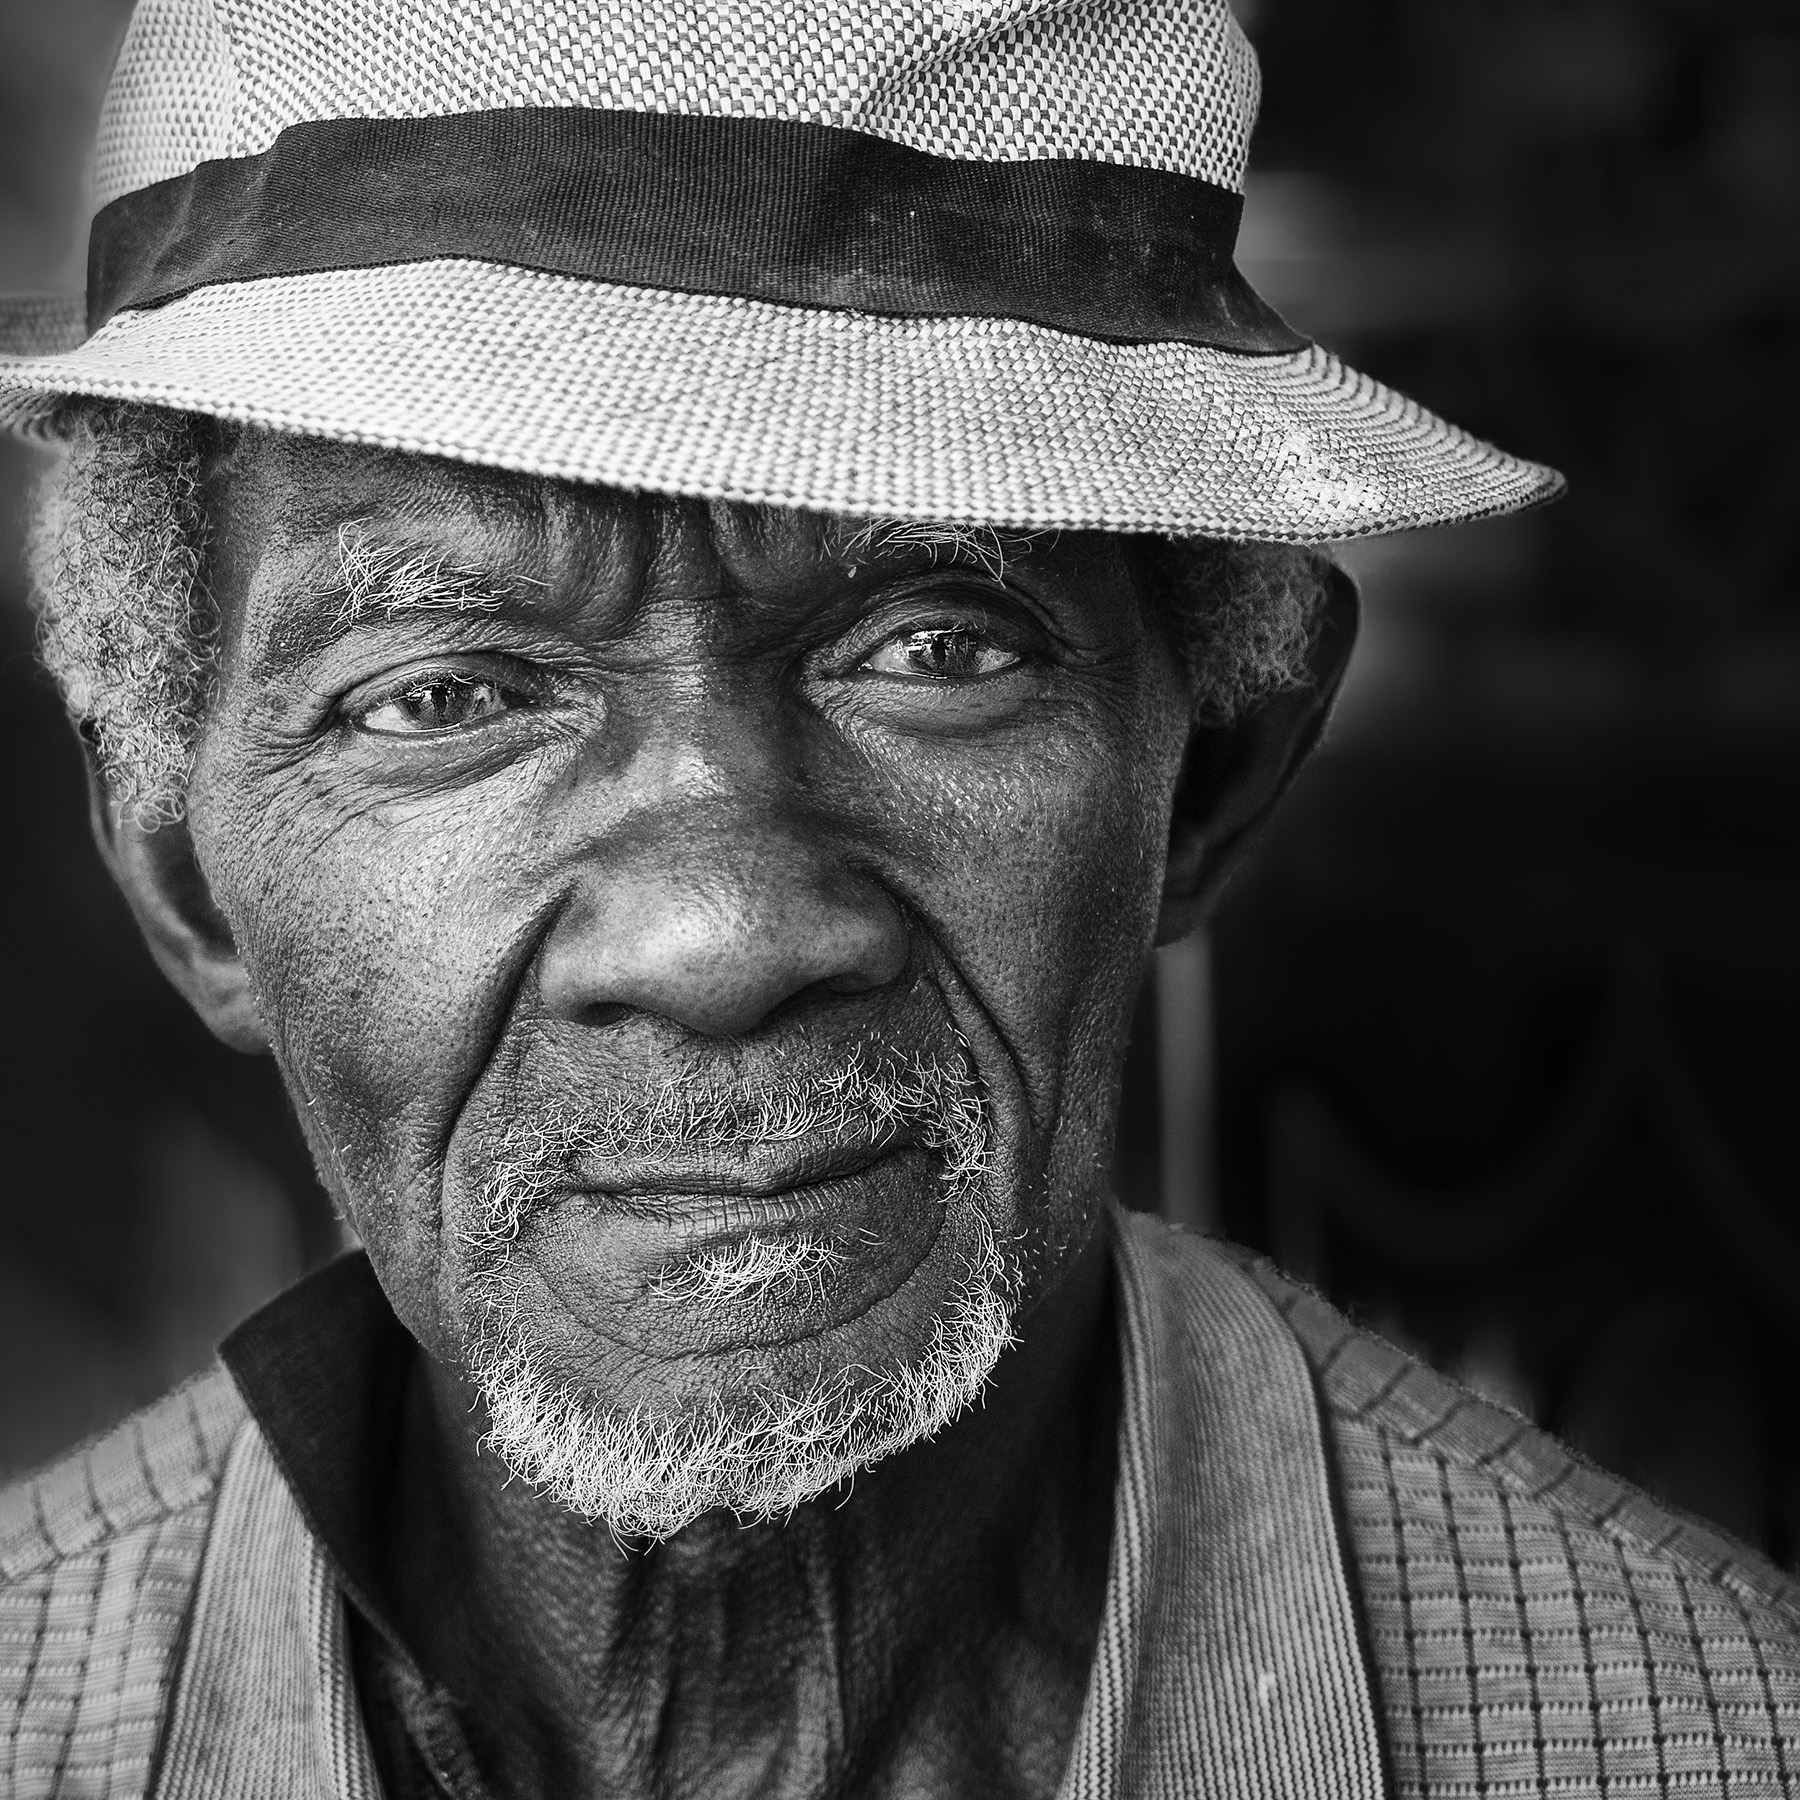 I saw Sam walking into a cut rate liquor store. I could not resist, so I waited outside for about 5 minutes to meet him. He was happy to be photographed and proud to be born and raised in Sarasota.  Bob